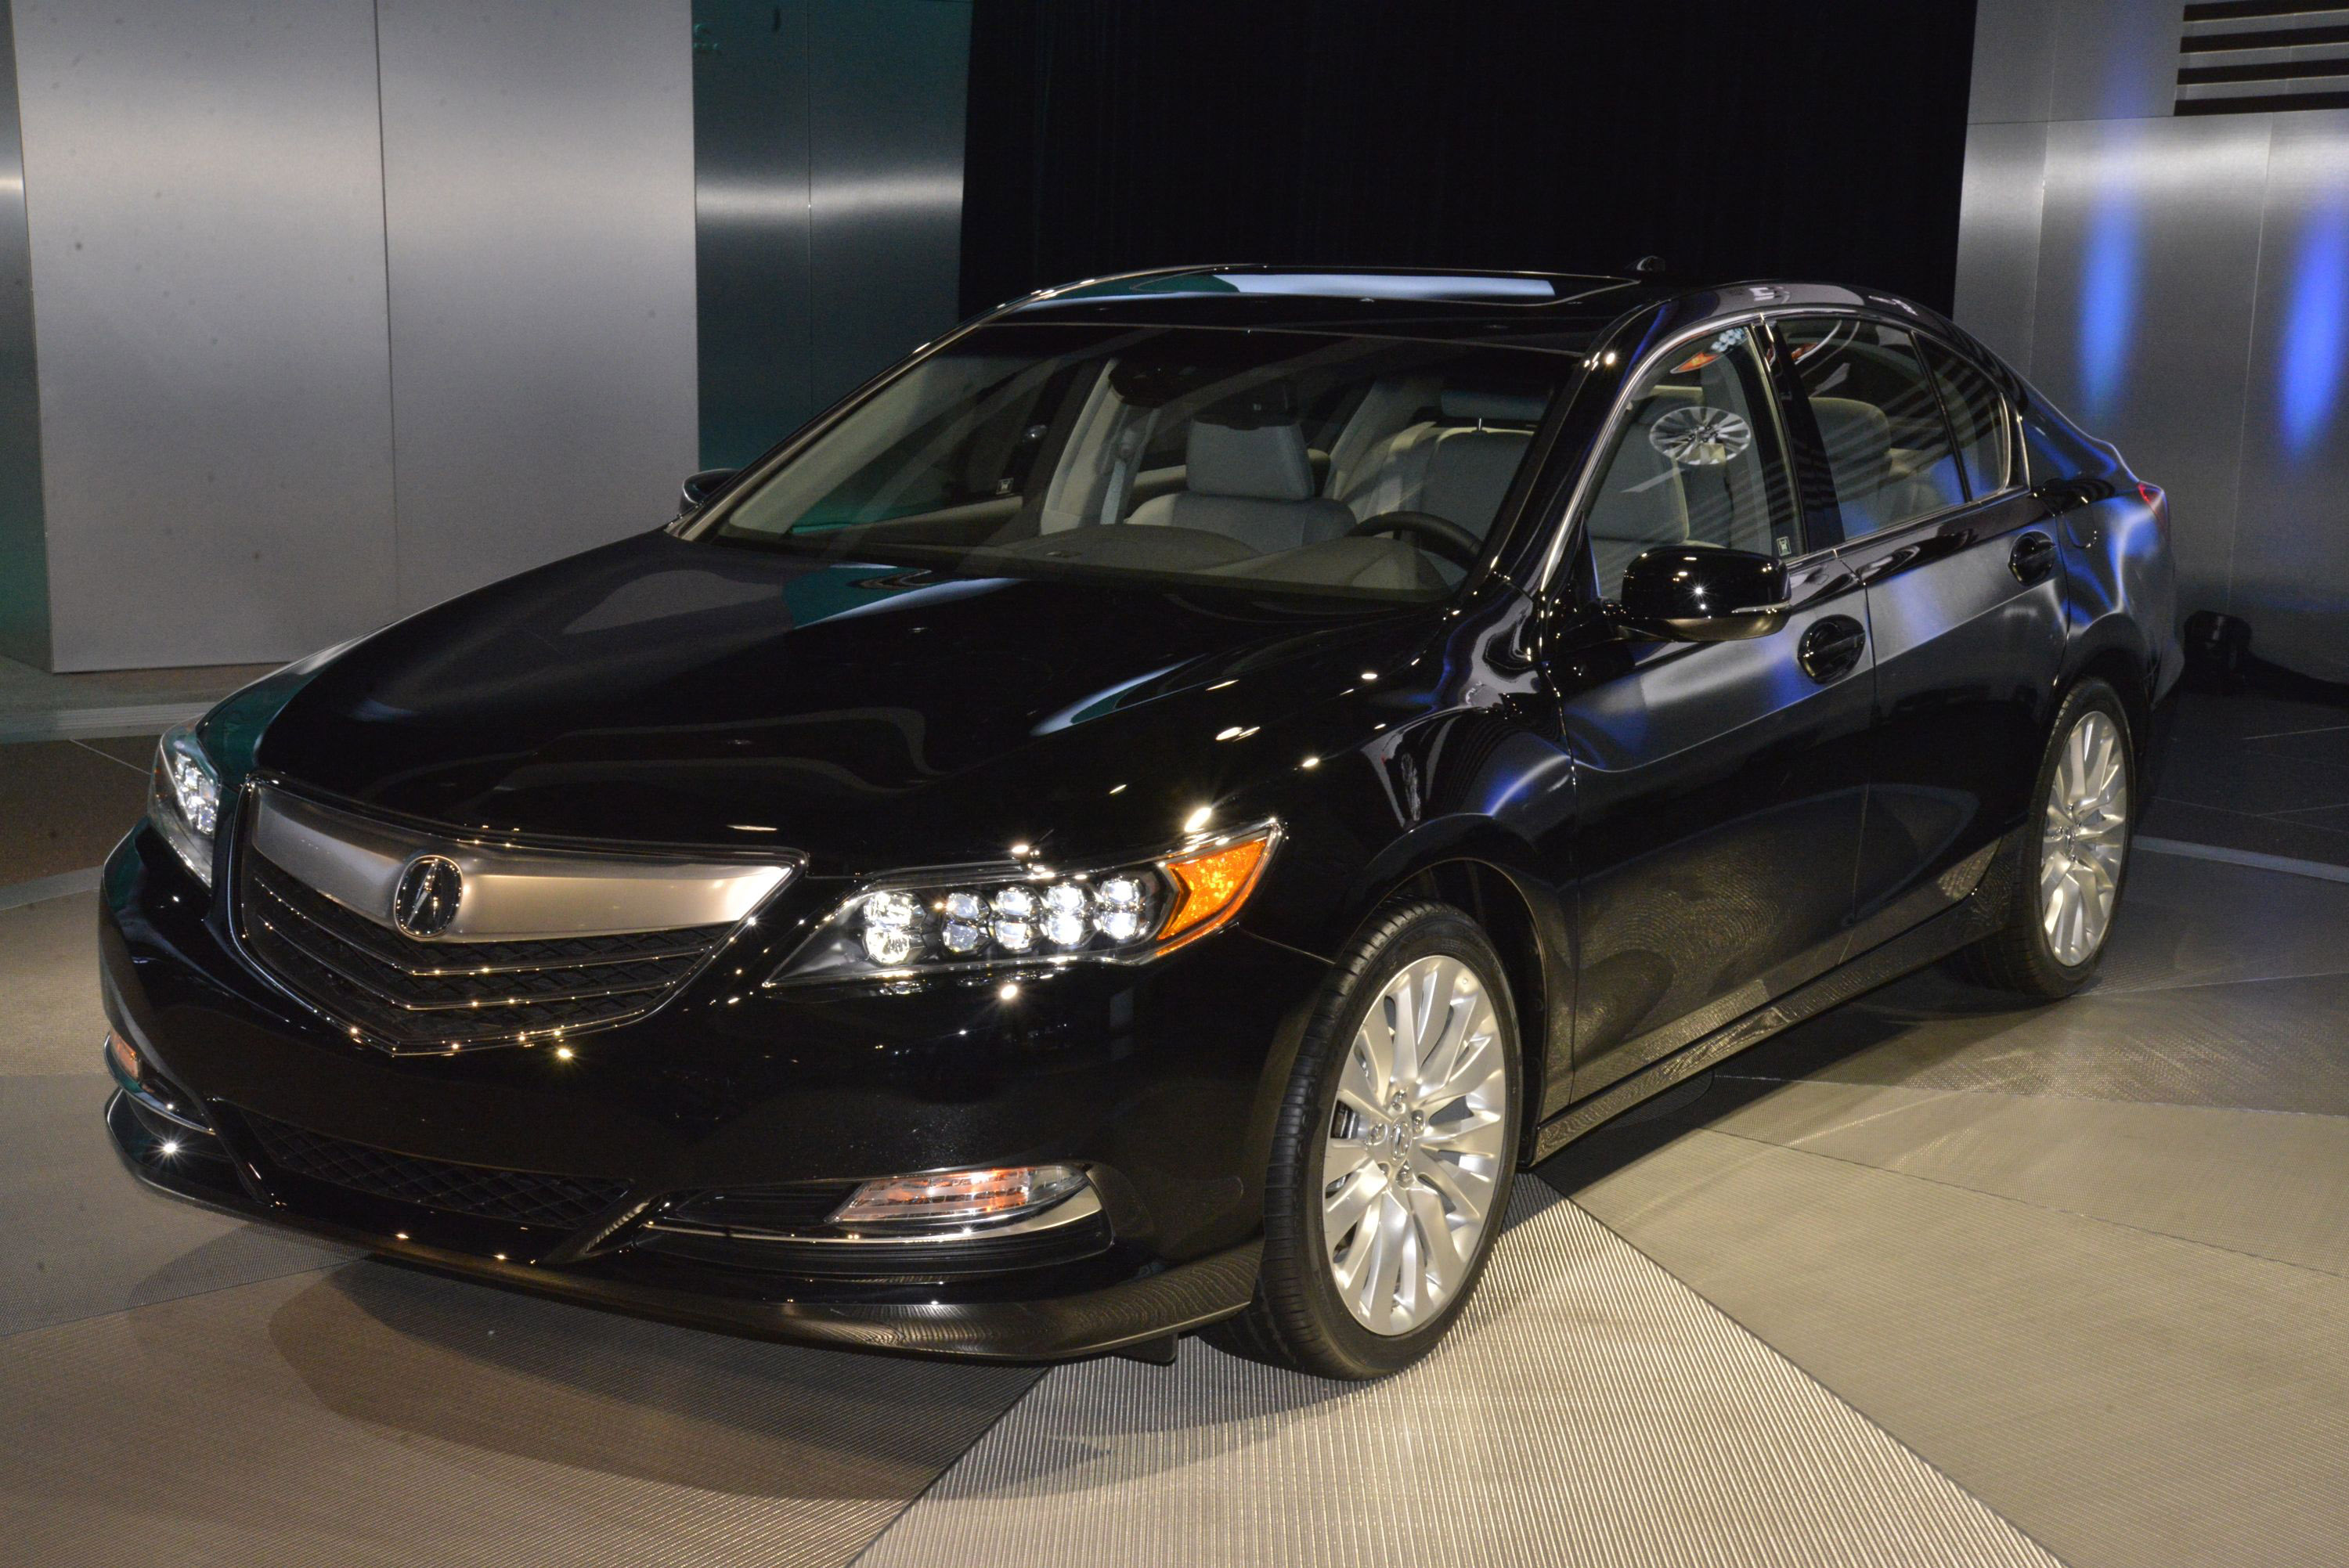 los gallery ilx of video debut pricing show ahead news and acura tlx divulged photo angeles teased fuel auto ratings economy